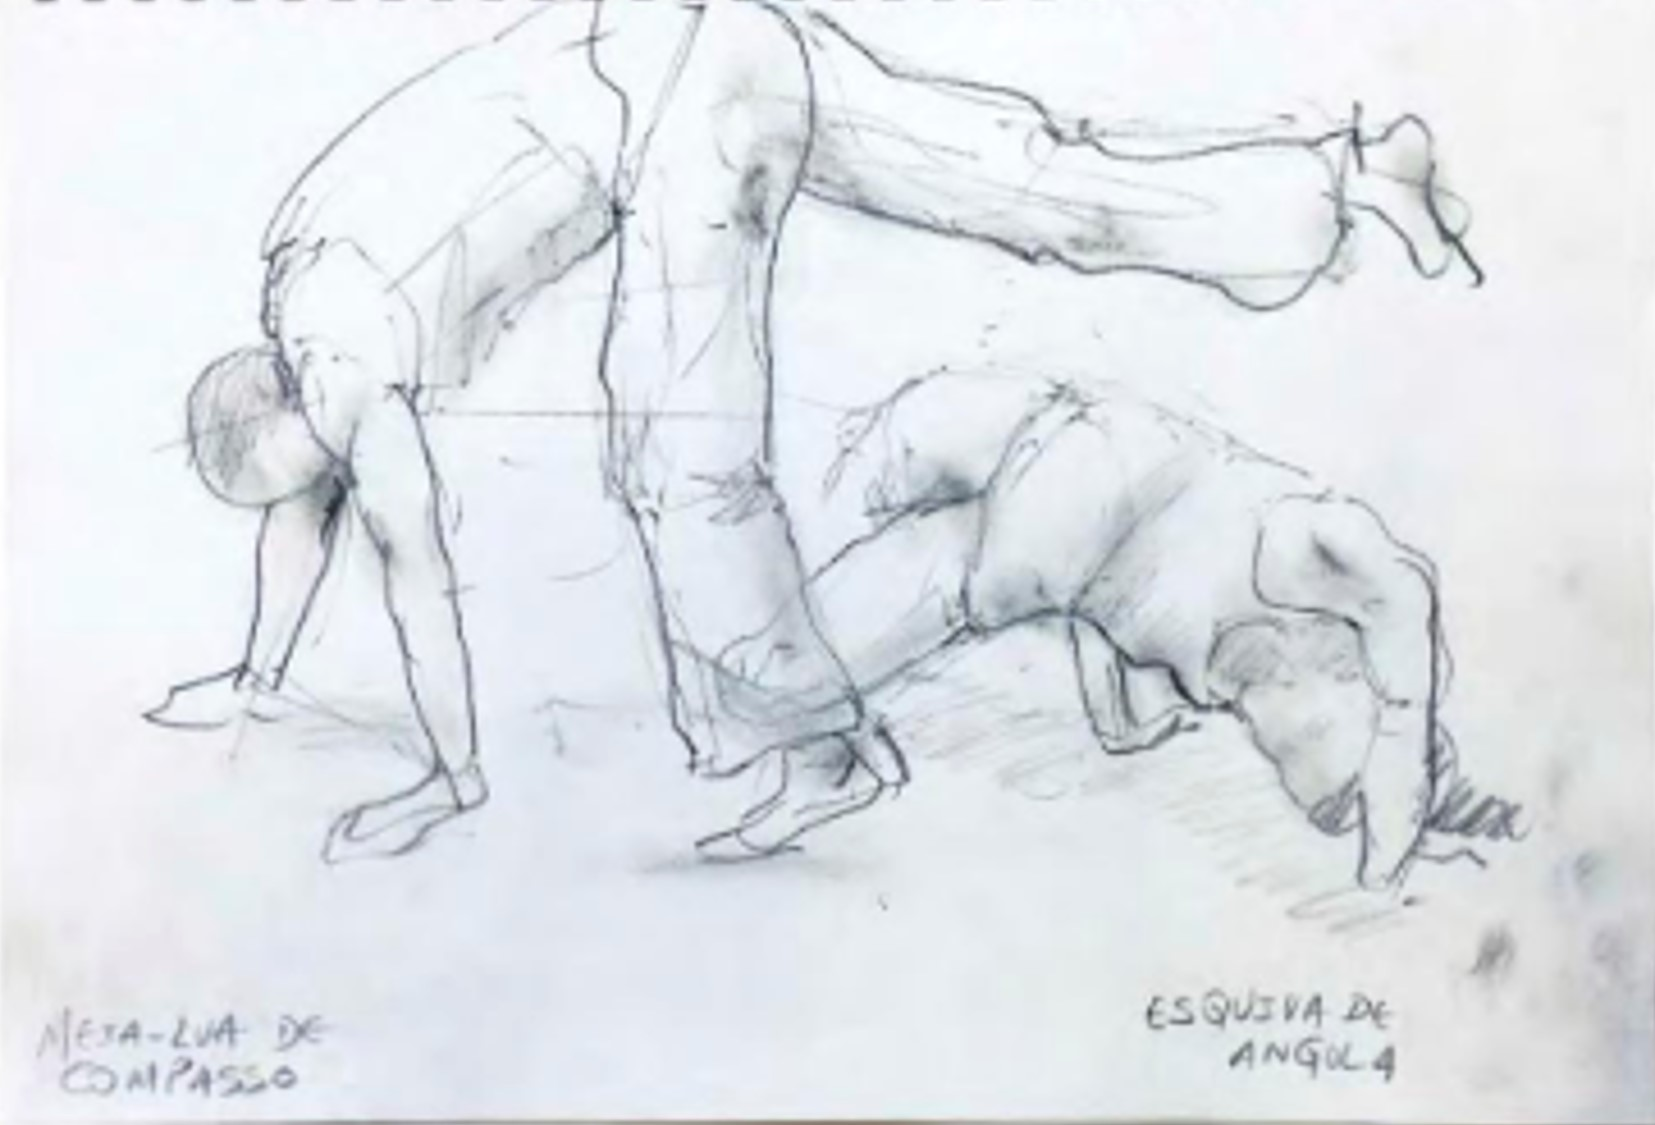 Life drawing sketch of two people doing capoeira poses